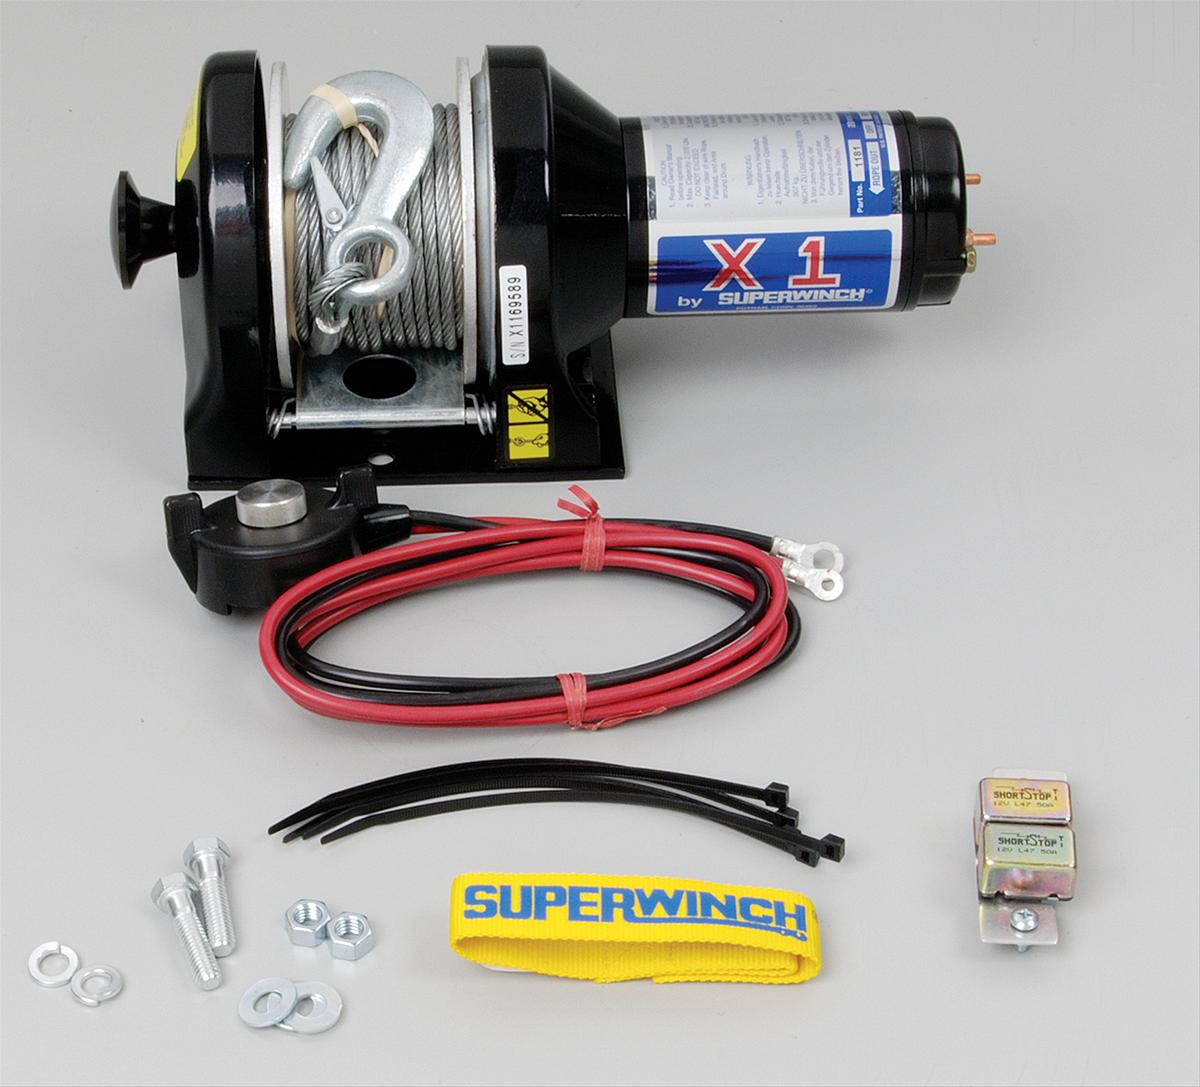 Superwinch 1181